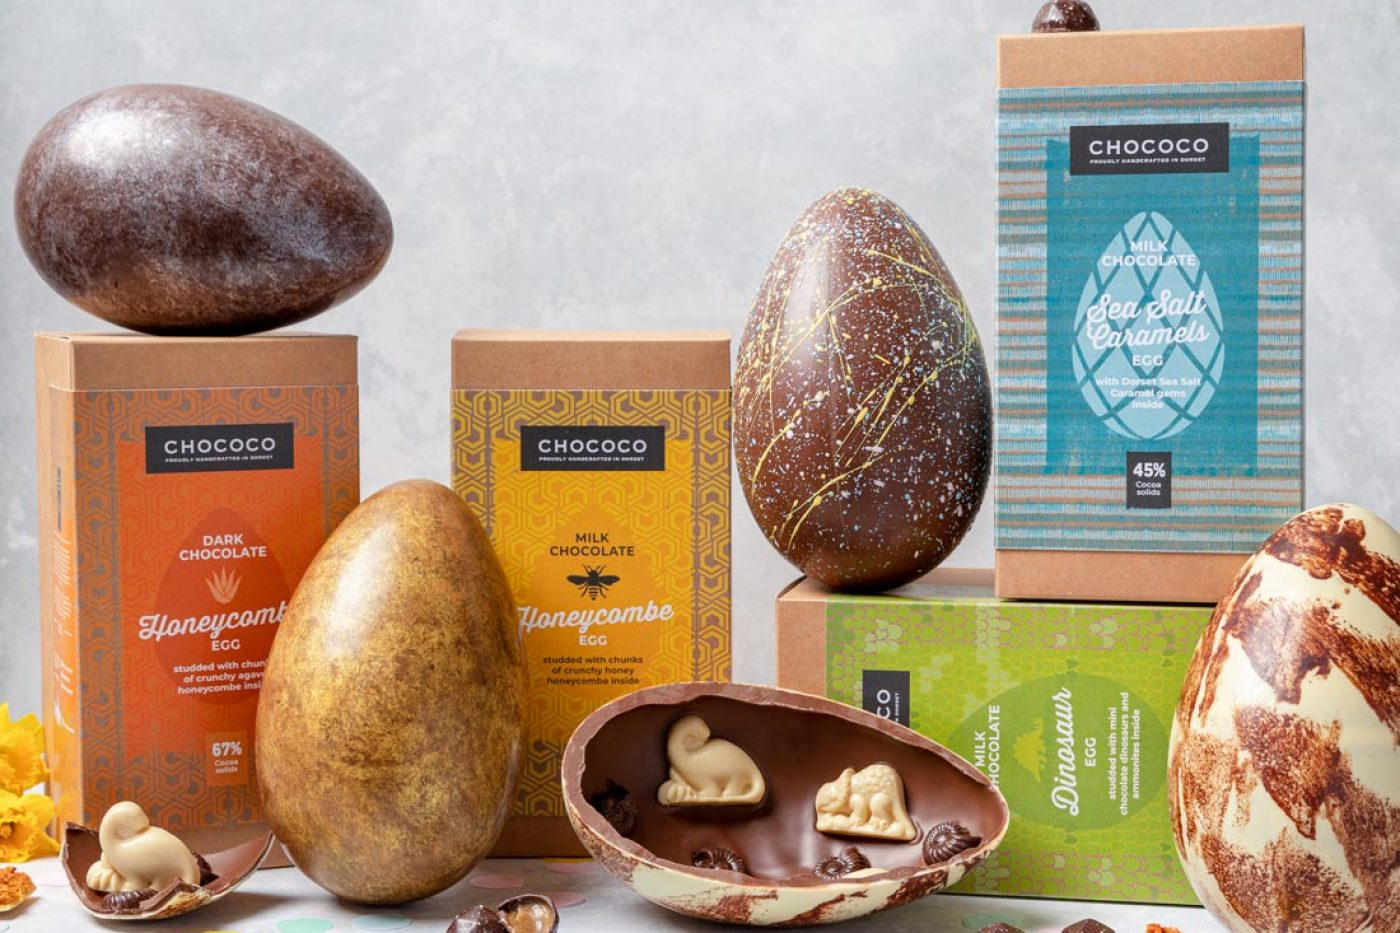 Chococo Giant collection - 5 of the best gourmet Easter eggs